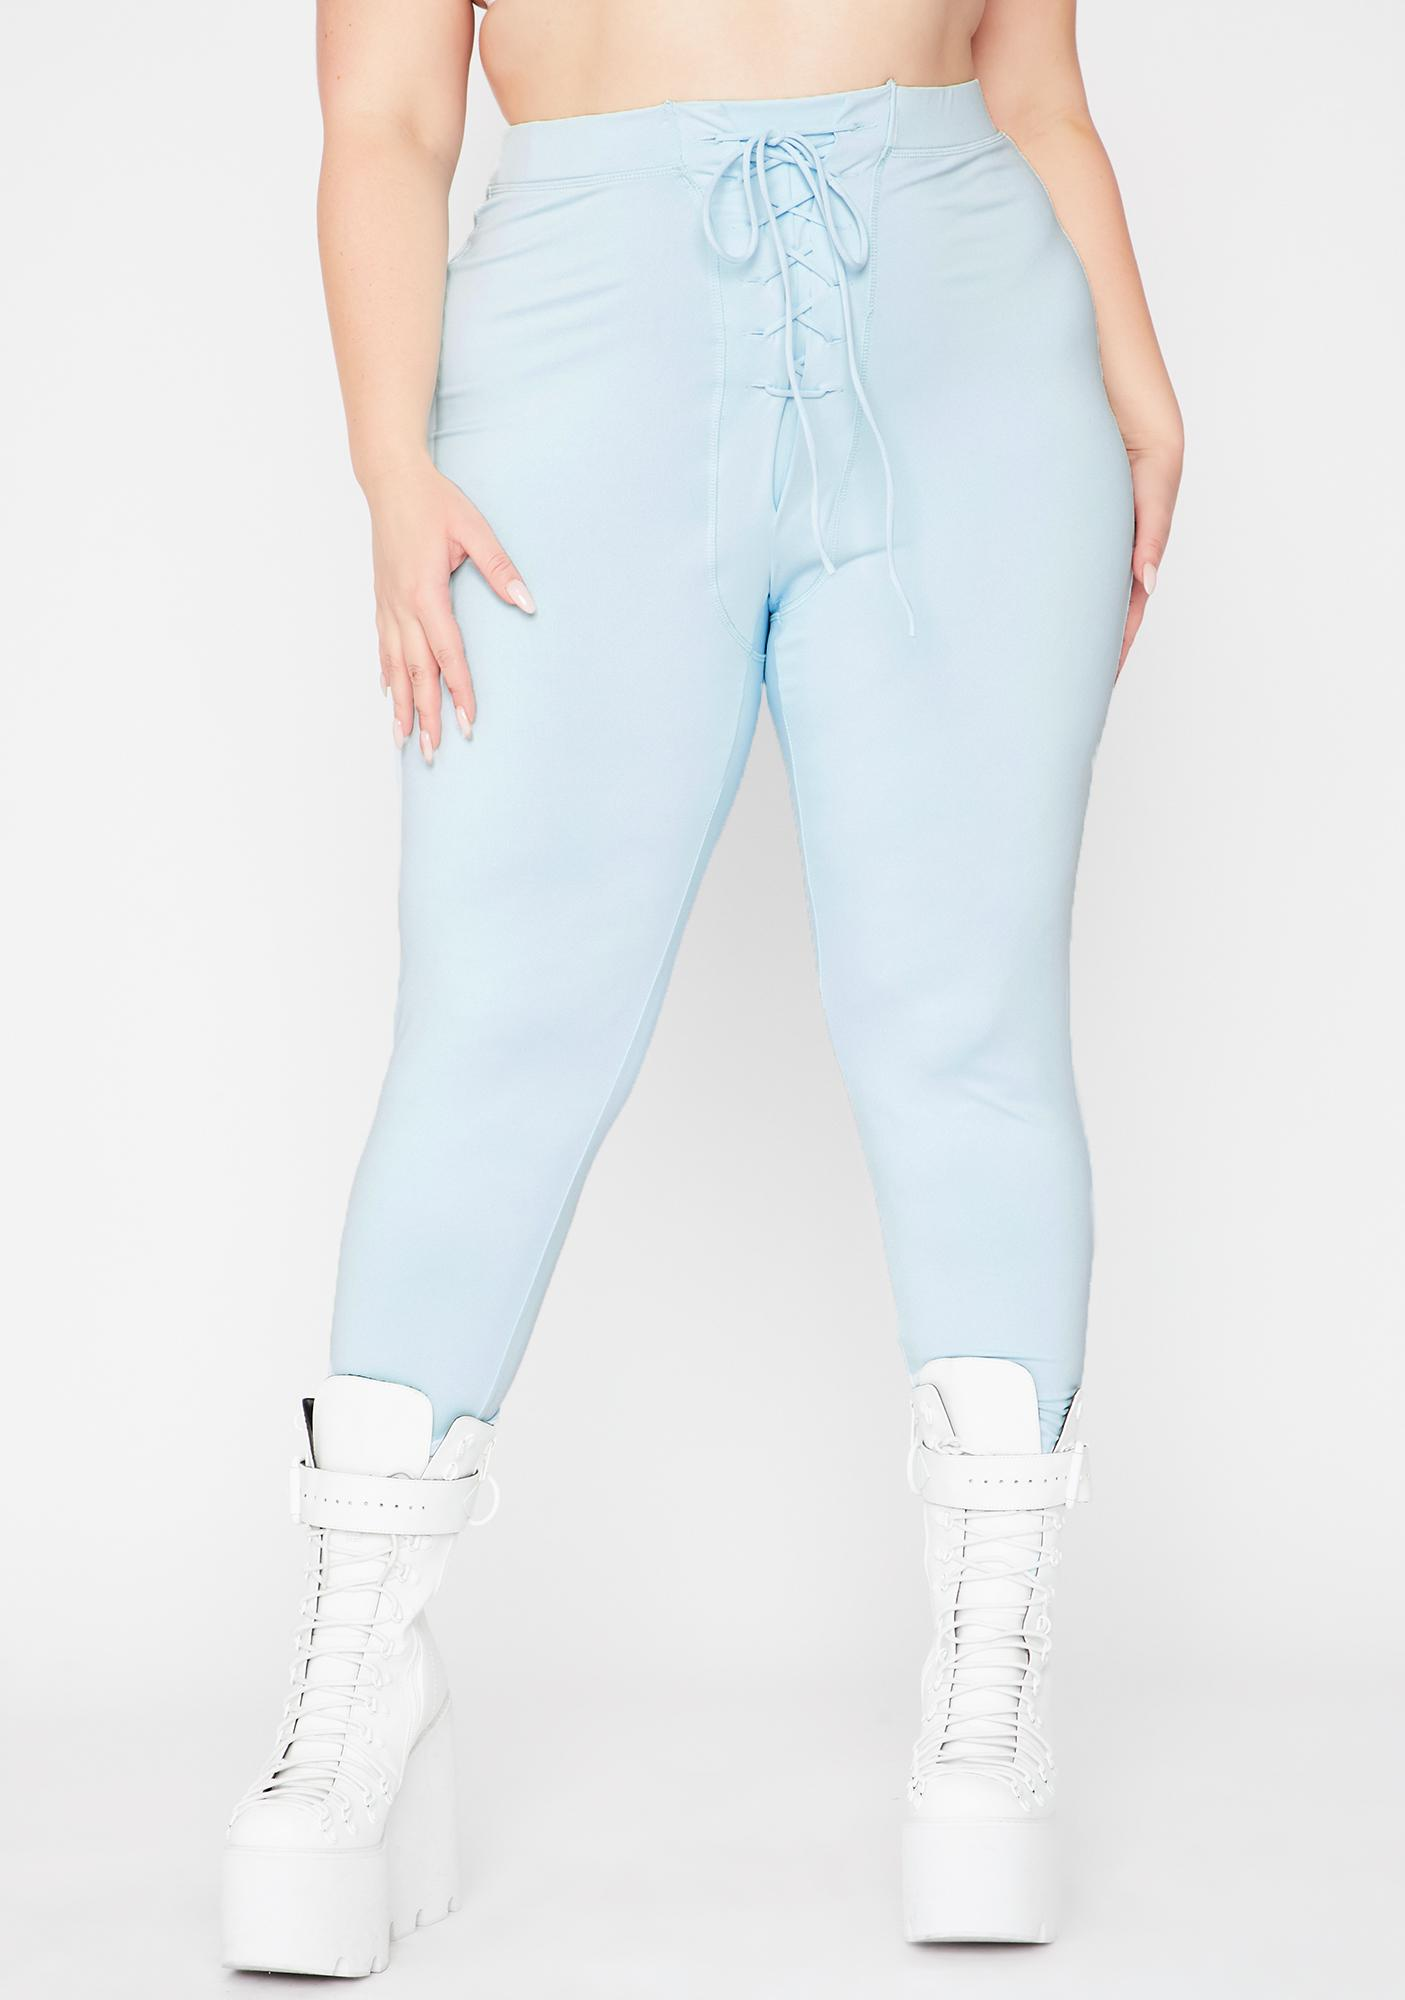 Sky She's On My Side Lace Up Leggings